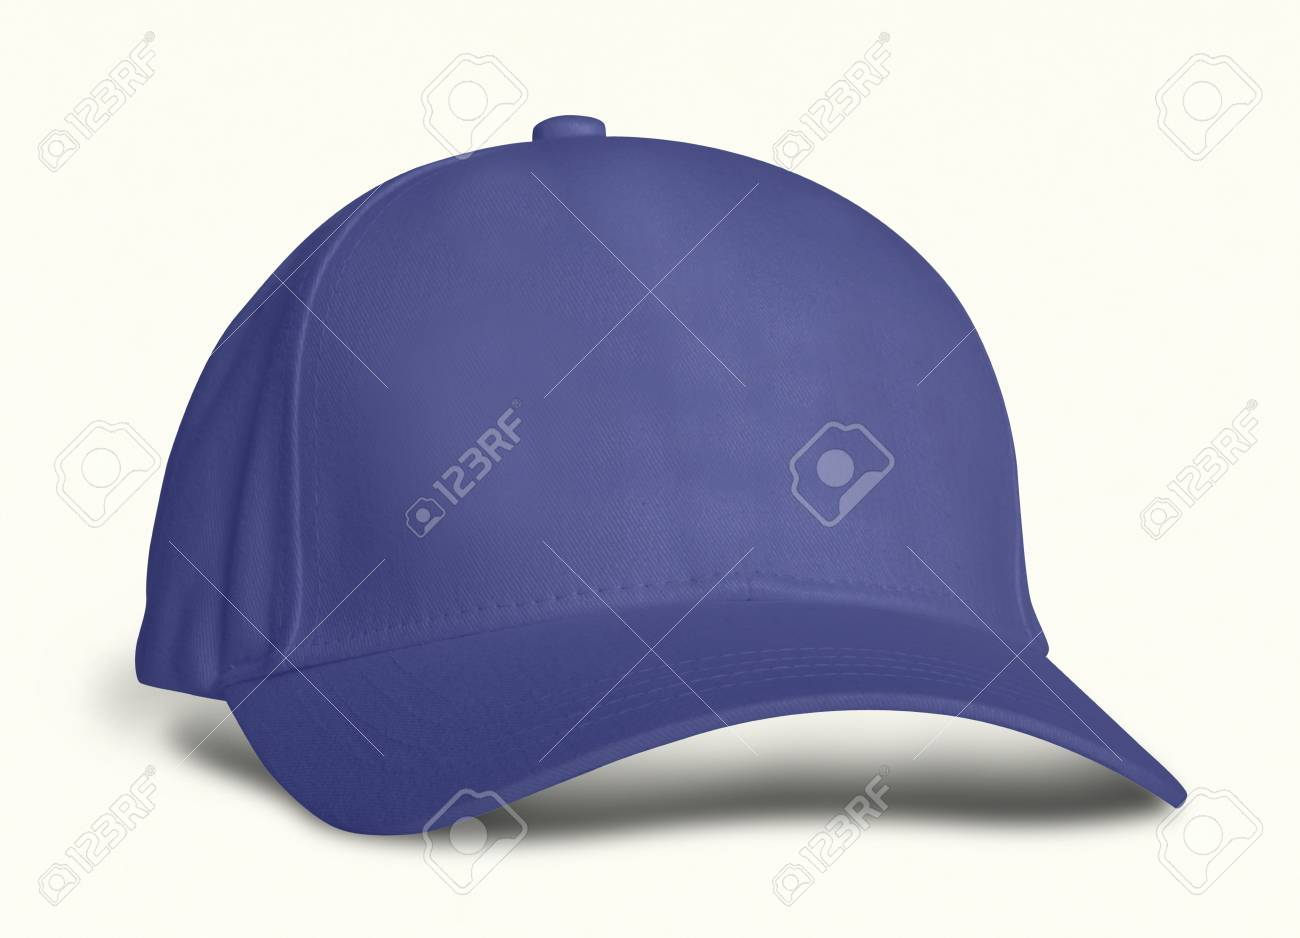 27d317ff83fe8 A modern and minimalist baseball cap mock up to help your designs  beautifully. You can customize almost everything in this cap image to match  your cap ...